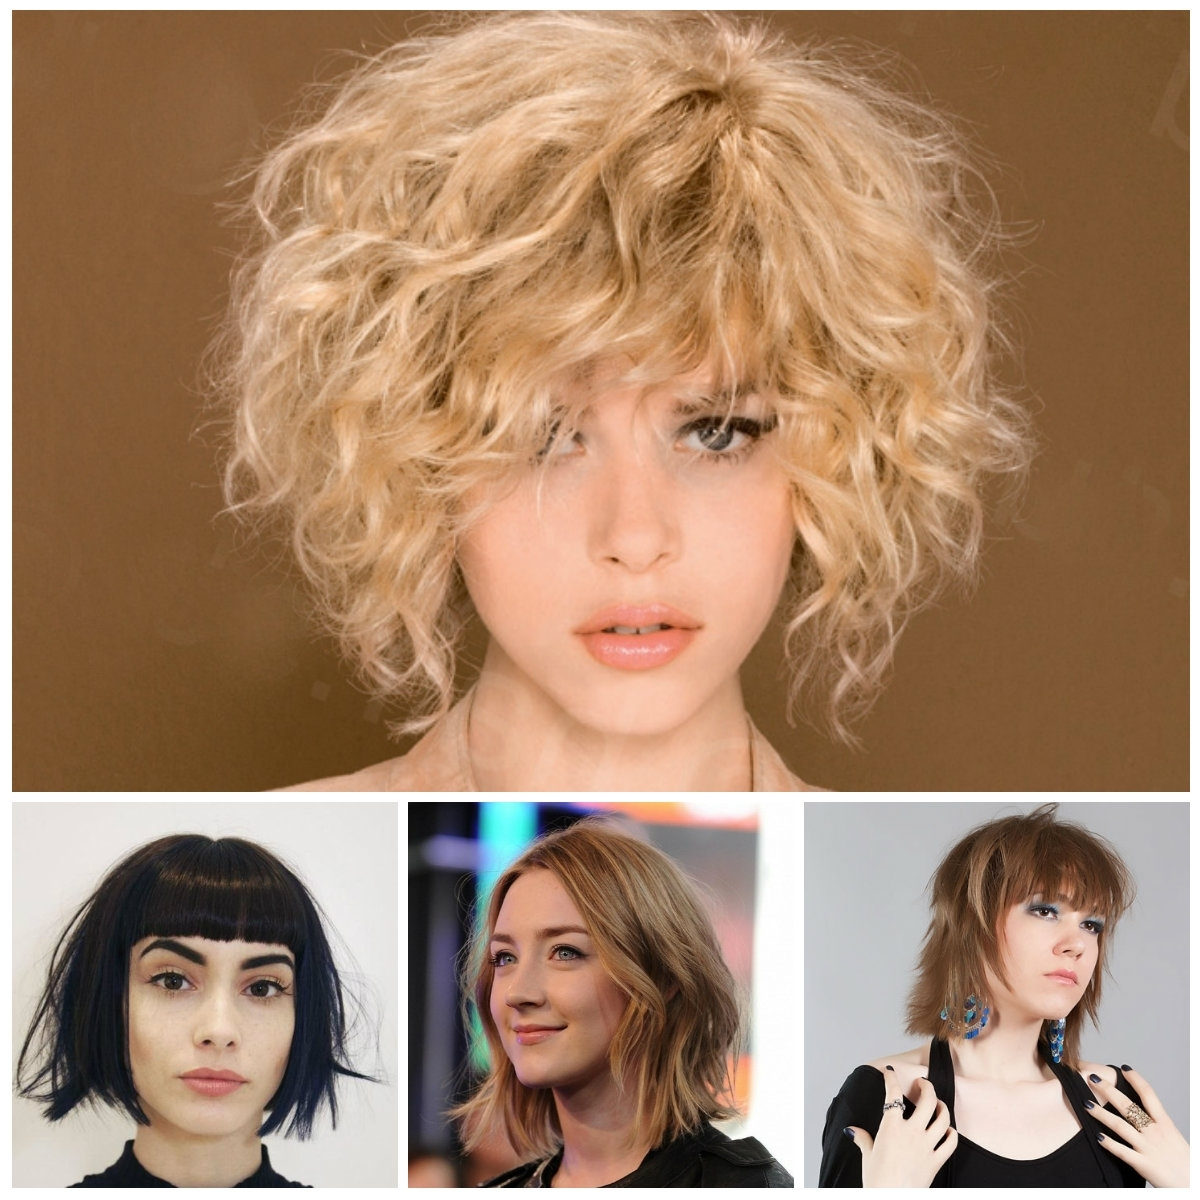 Shaggy Bob Haircut Ideas – New Hairstyles 2017 For Long, Short And Throughout 2017 Shaggy Bob Cut Hairstyles (View 13 of 15)